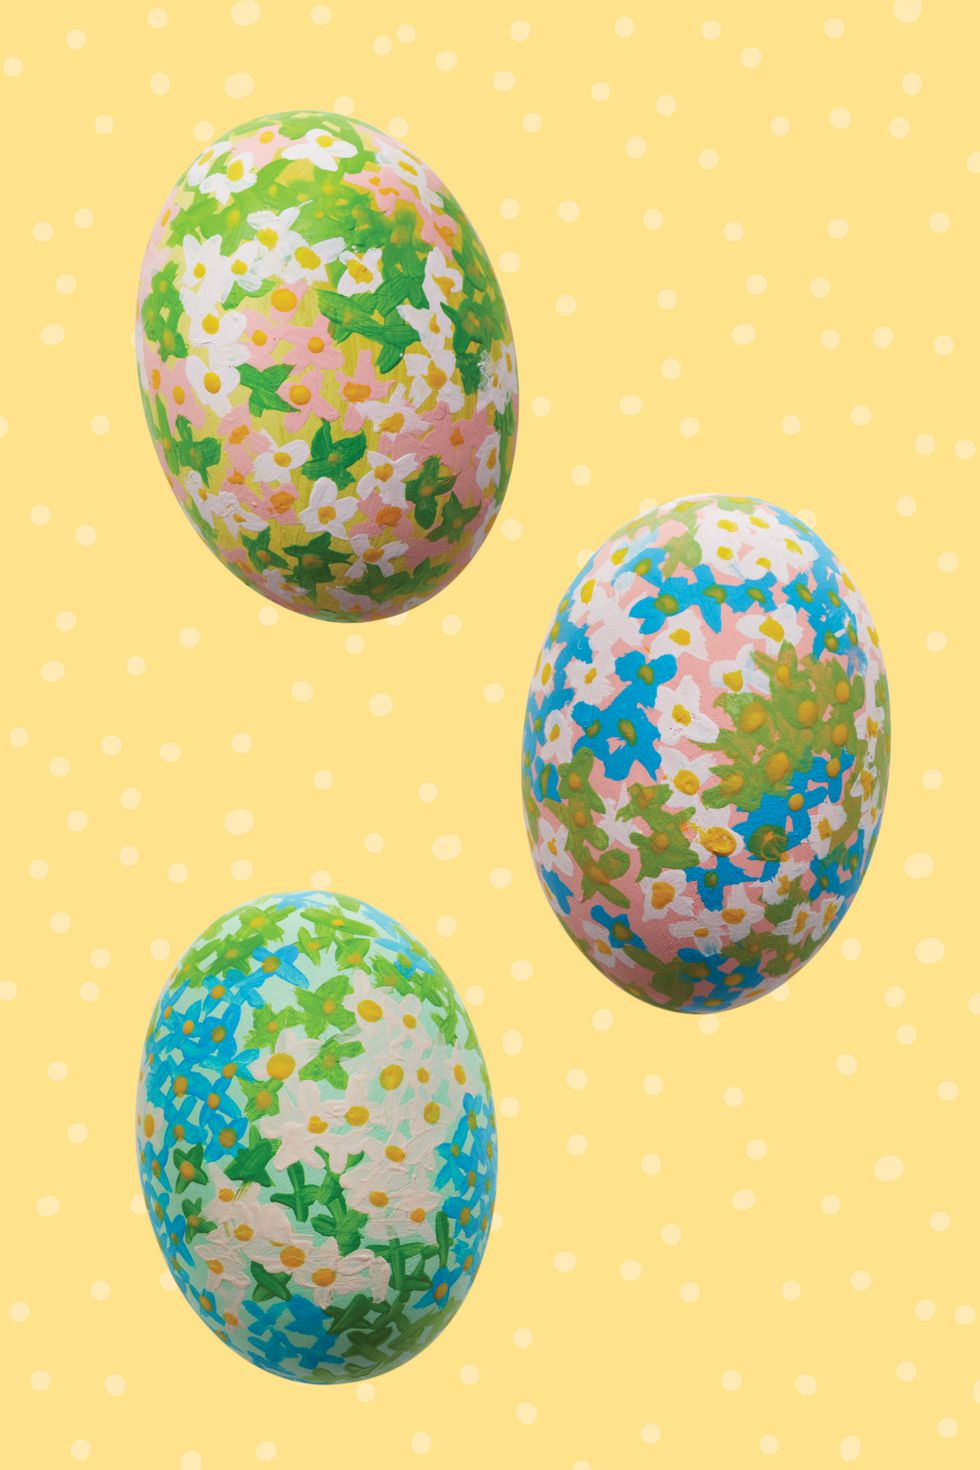 floral-easter-eggs-1520291712